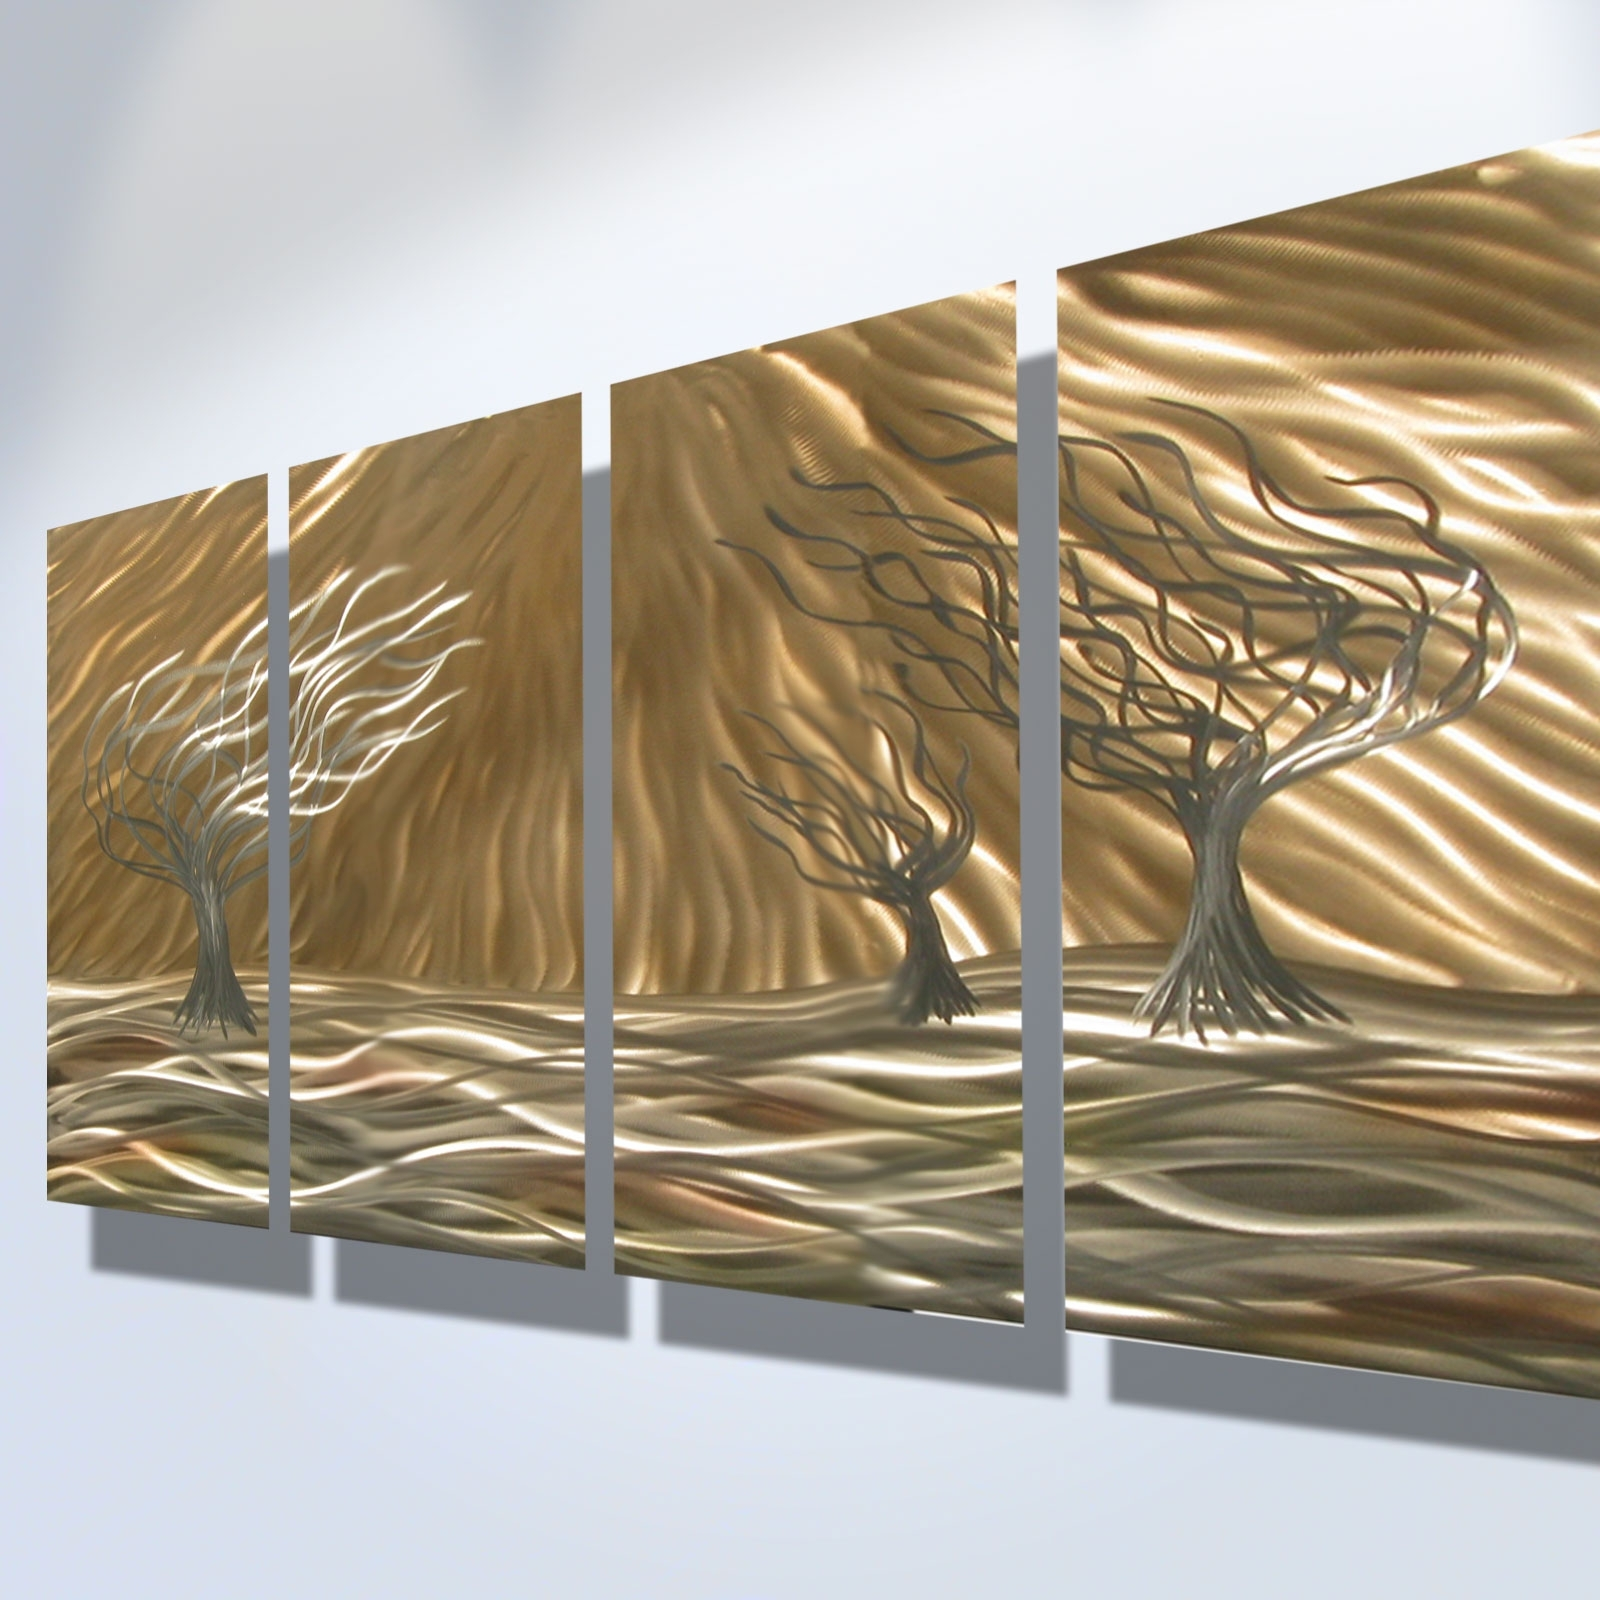 3 Trees 4 Panel – Abstract Metal Wall Art Contemporary Modern With Recent Abstract Metal Wall Art Panels (View 5 of 20)